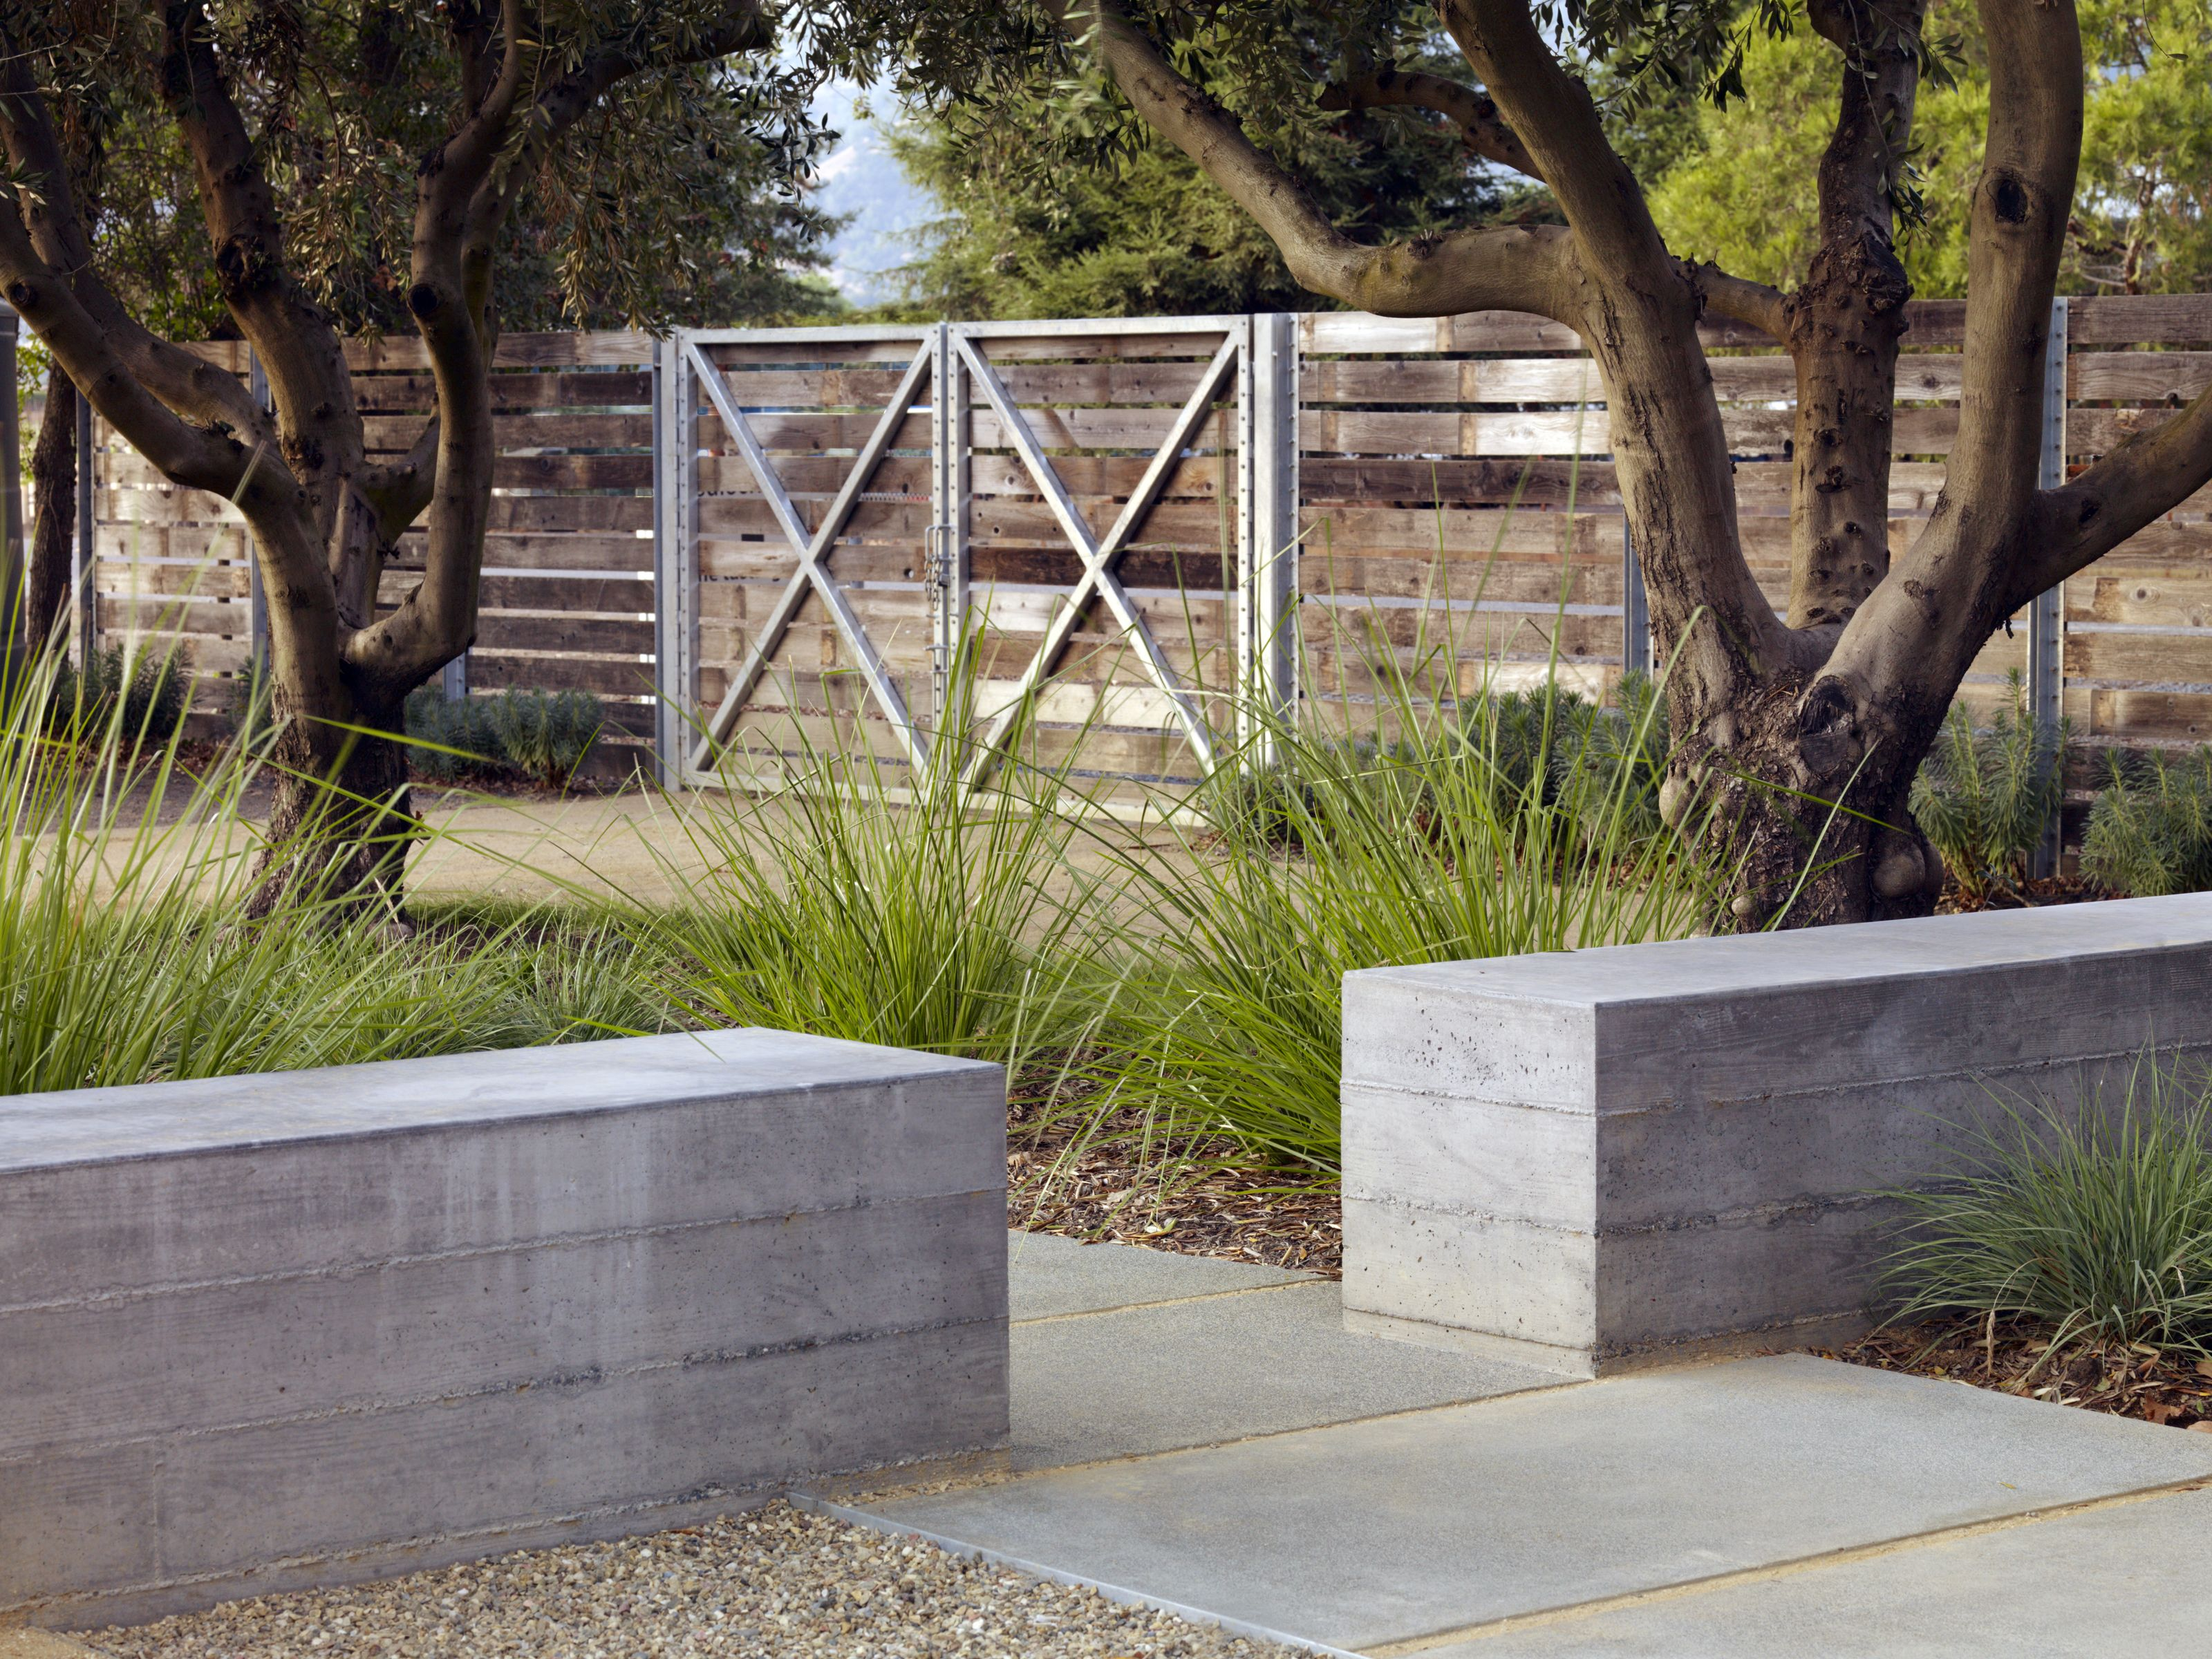 Medlock Ames Tasting Room And Alexander Valley Bar With Images Concrete Garden Wall Seating Concrete Planters